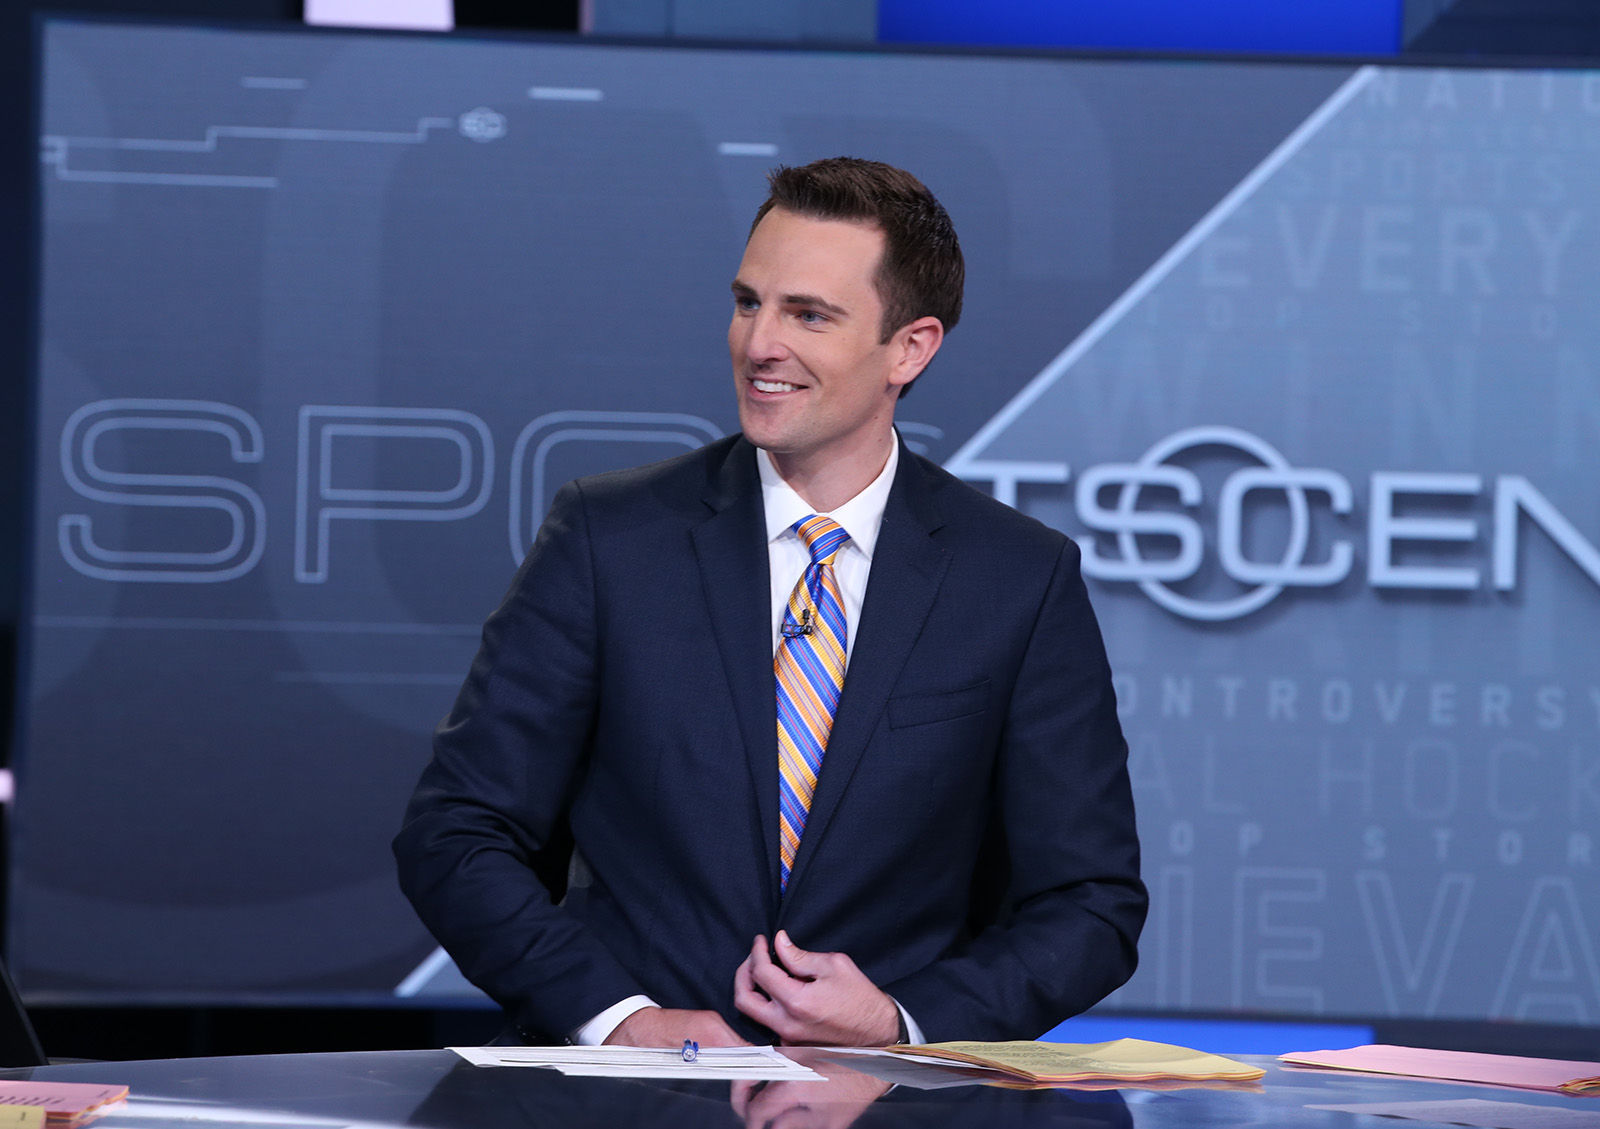 Image result for Chris Hassel espn